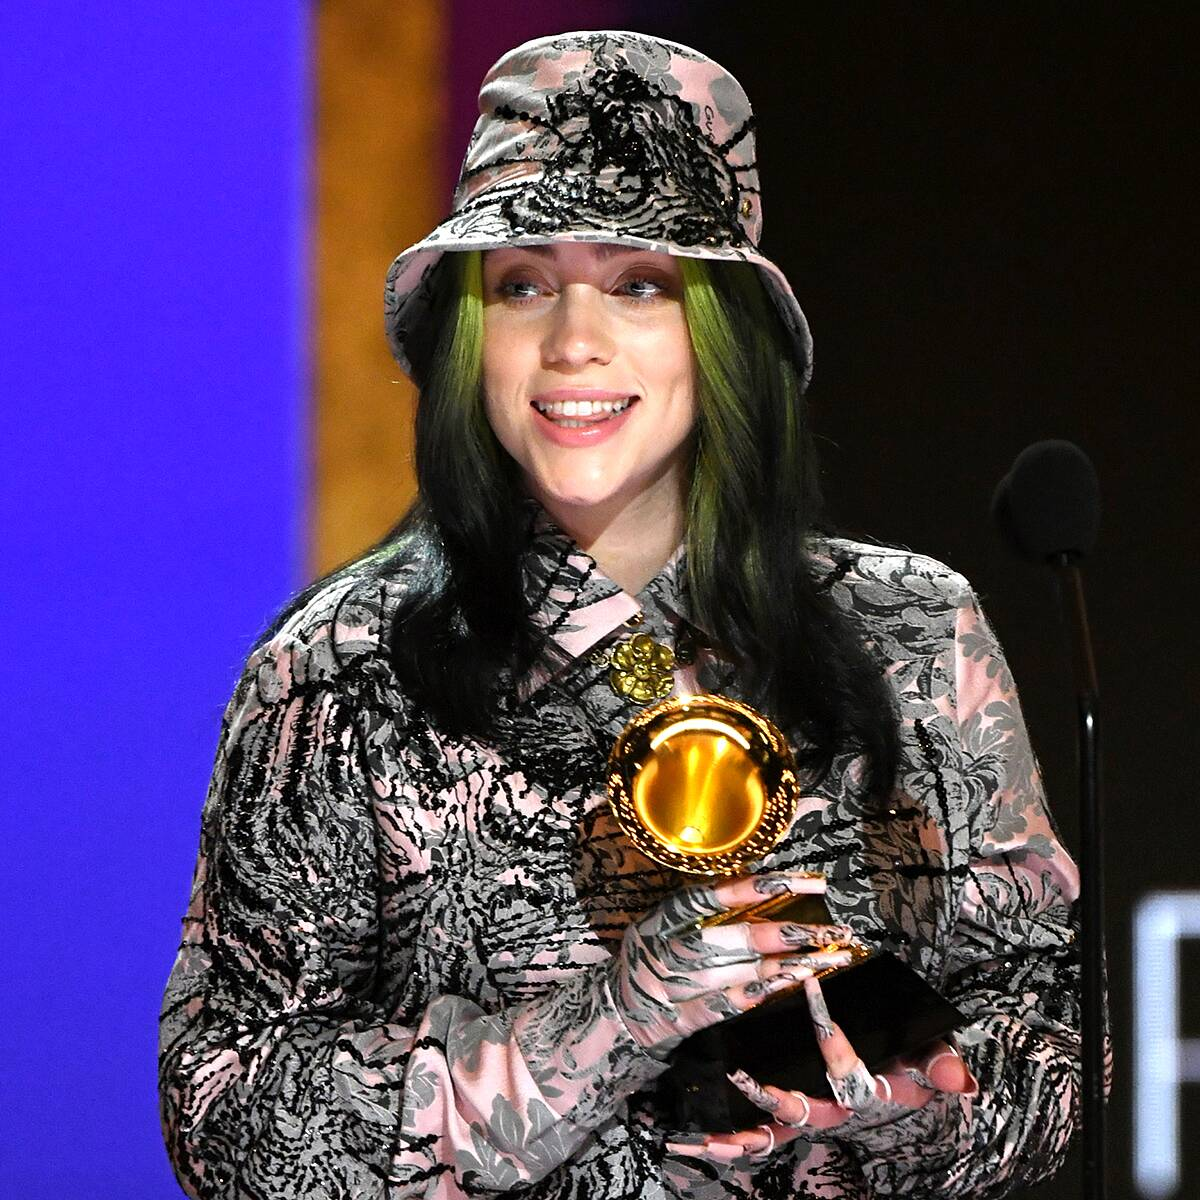 """Billie Eilish Dedicates 2021 Grammy Award to """"Queen"""" Megan Thee Stallion After Second Consecutive Win"""